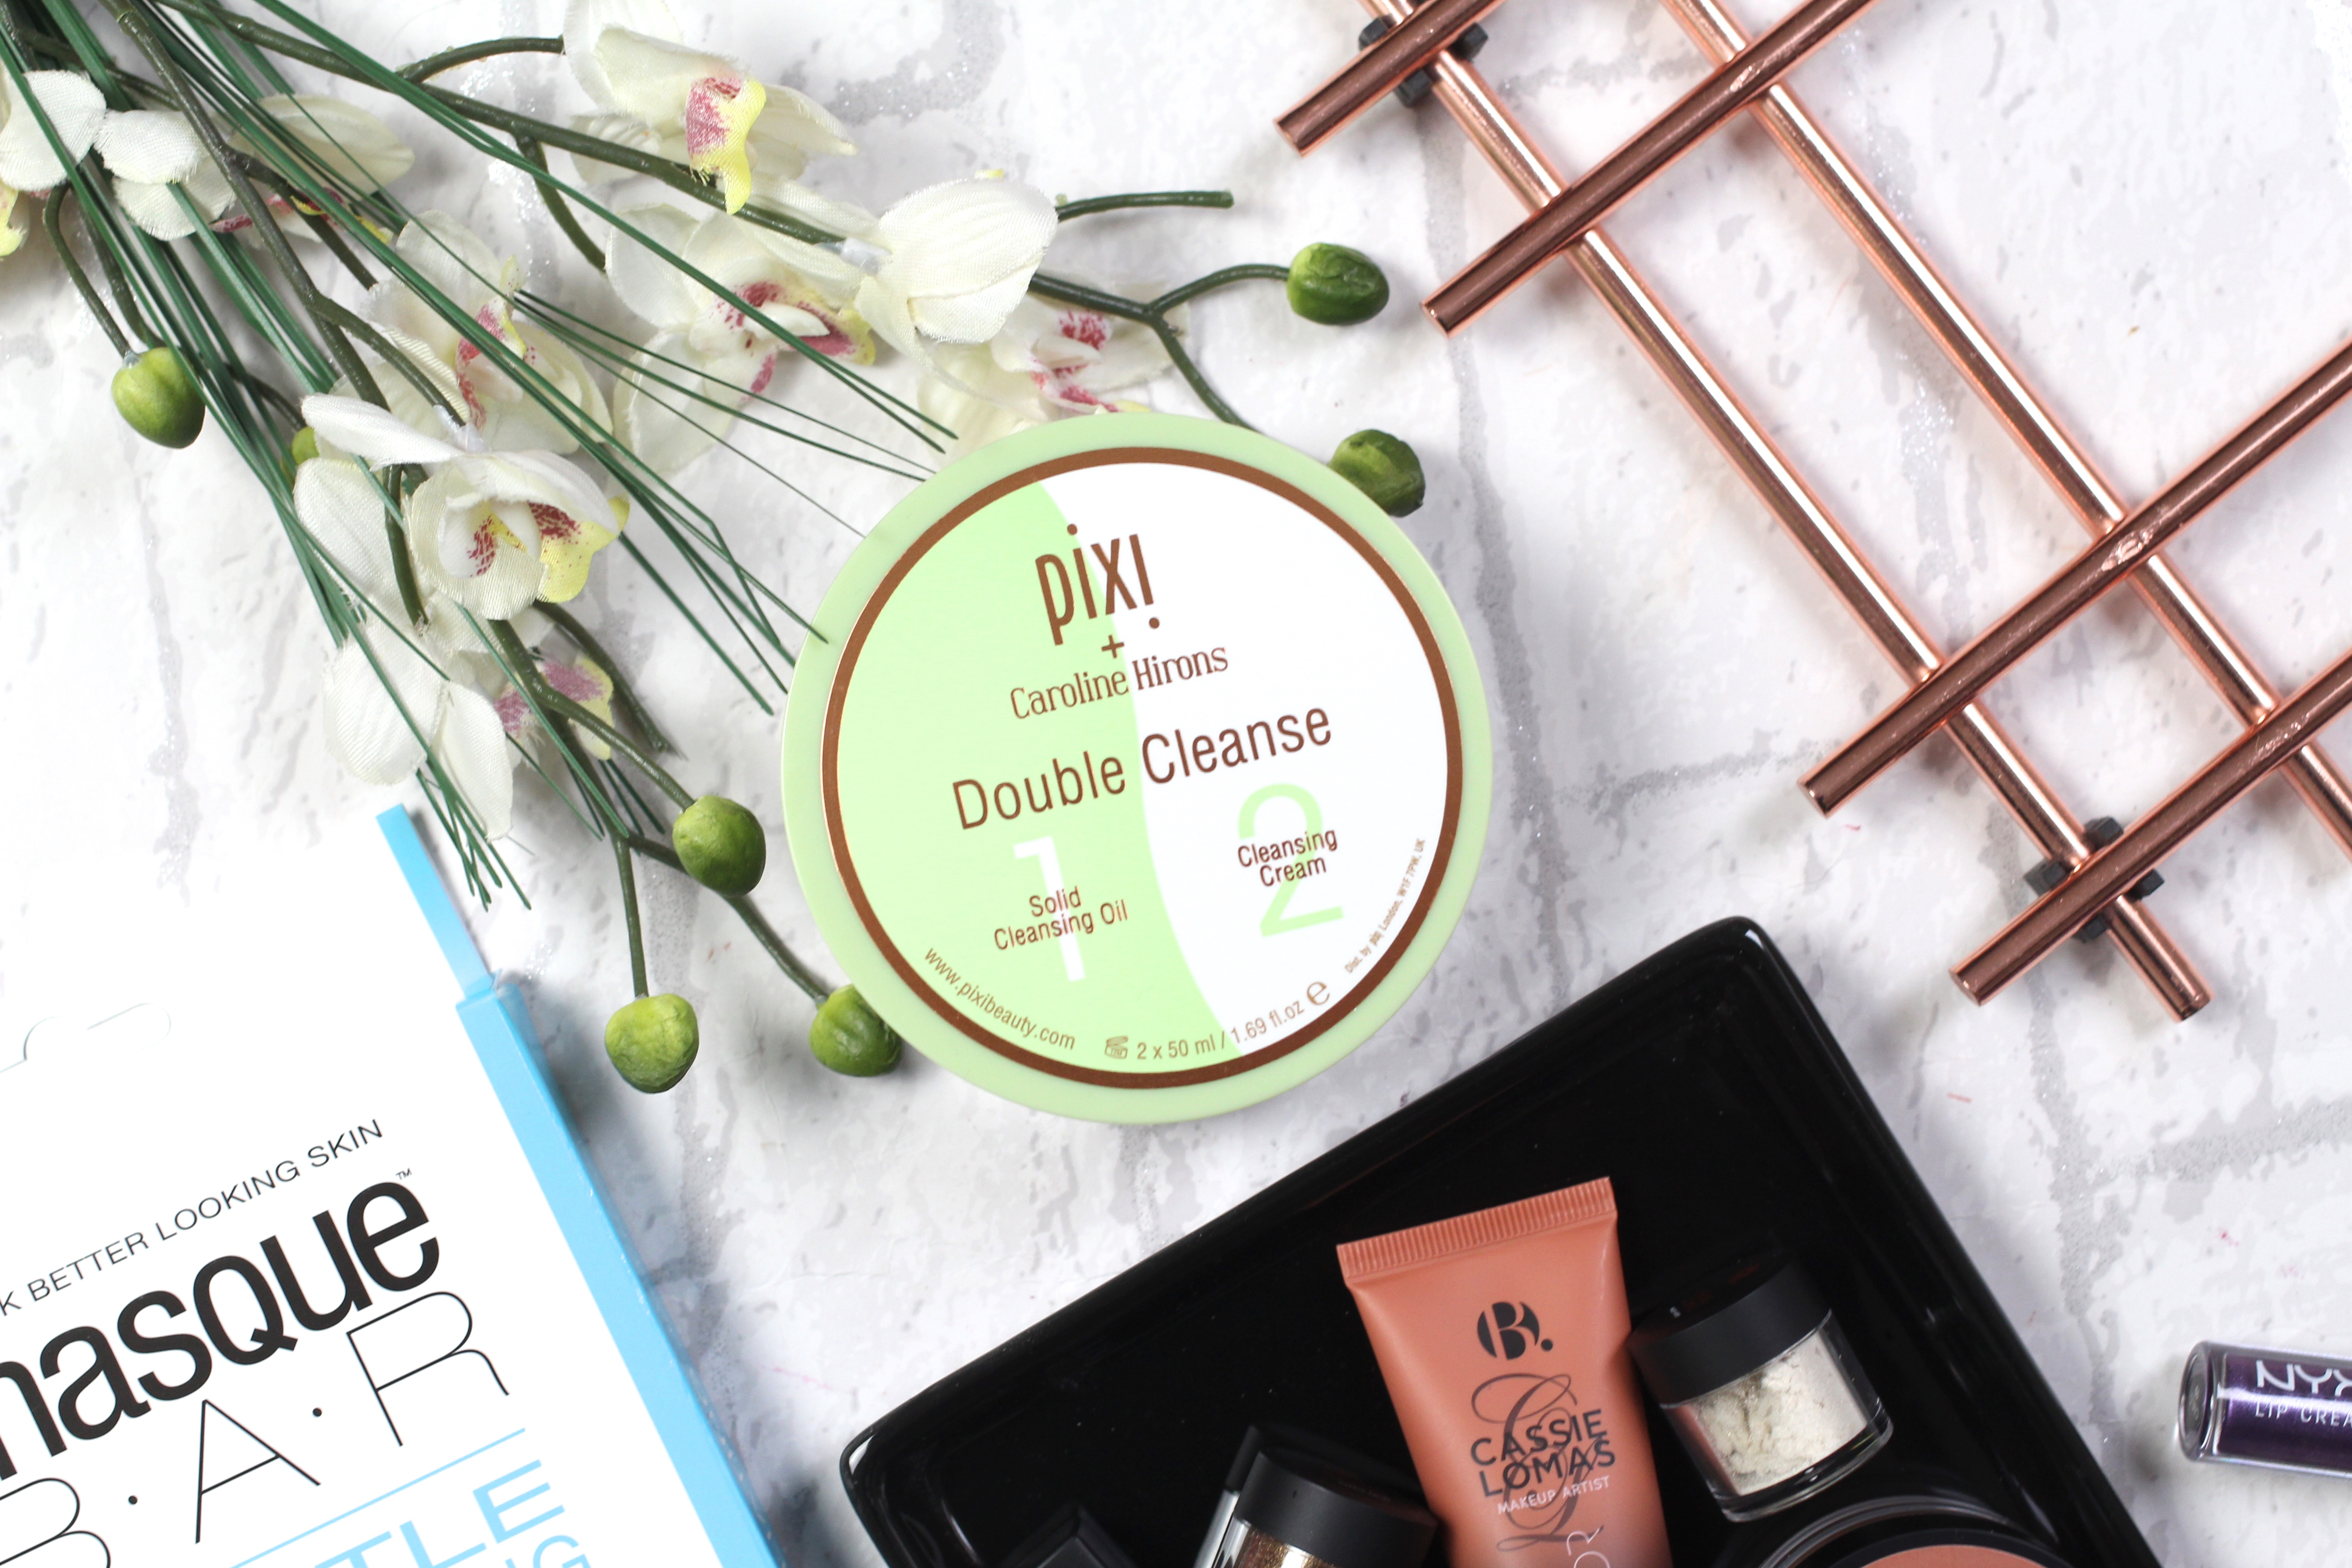 Pixi Double Cleanse